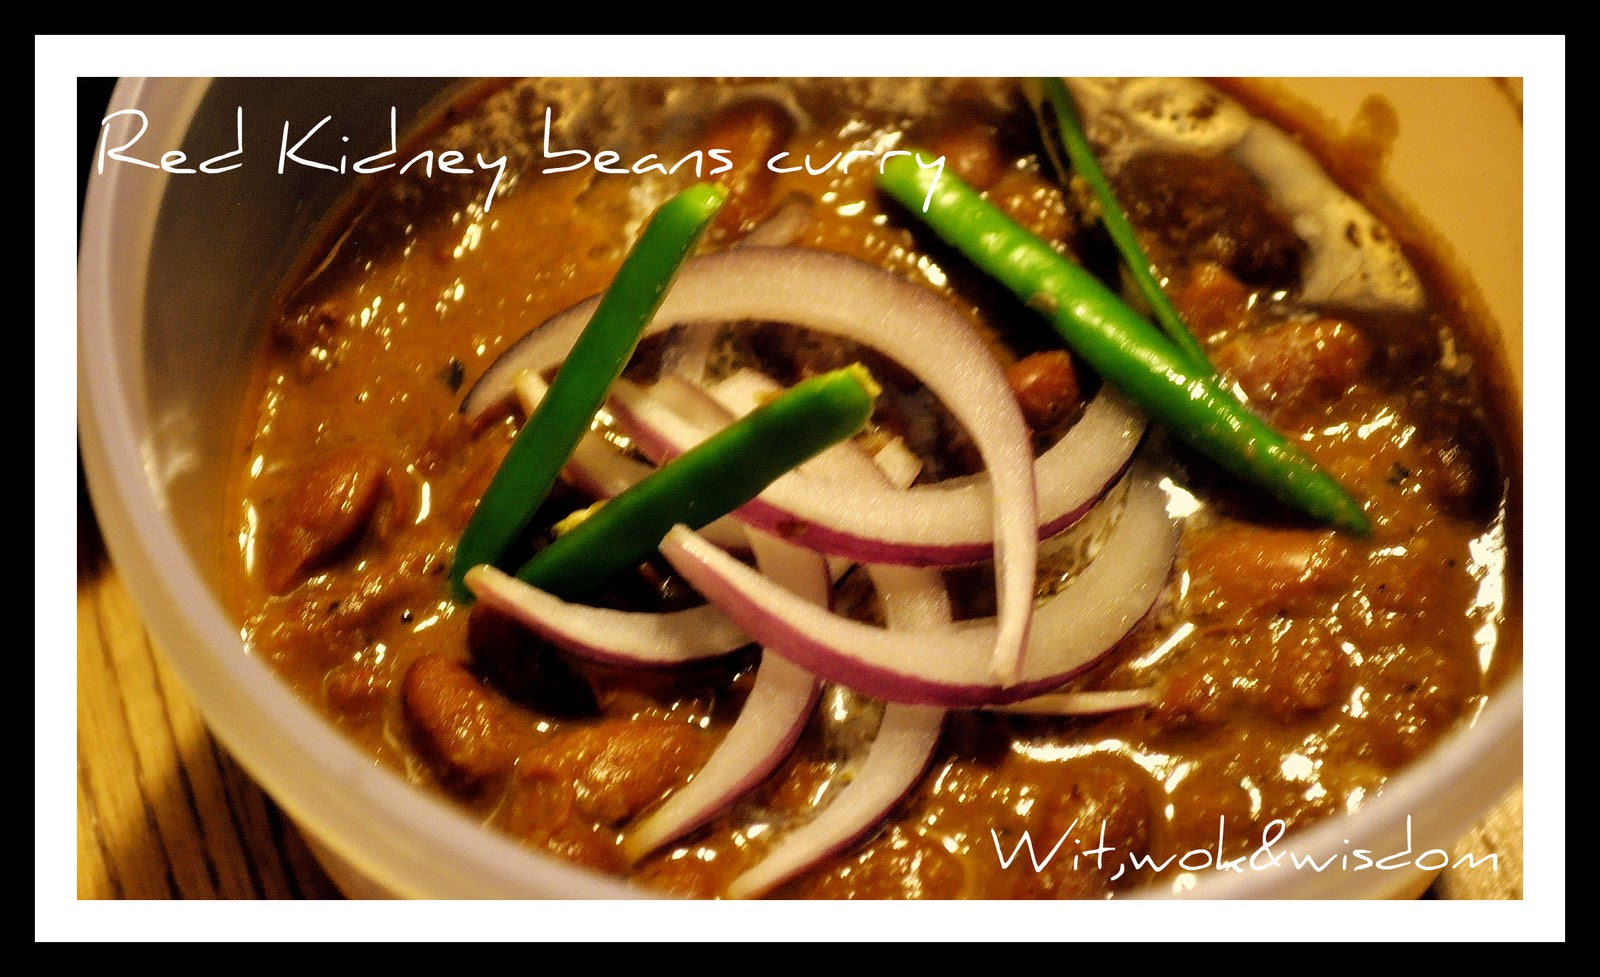 Wit,wok&wisdom: Rich and rocking - Red Kidney beans curry